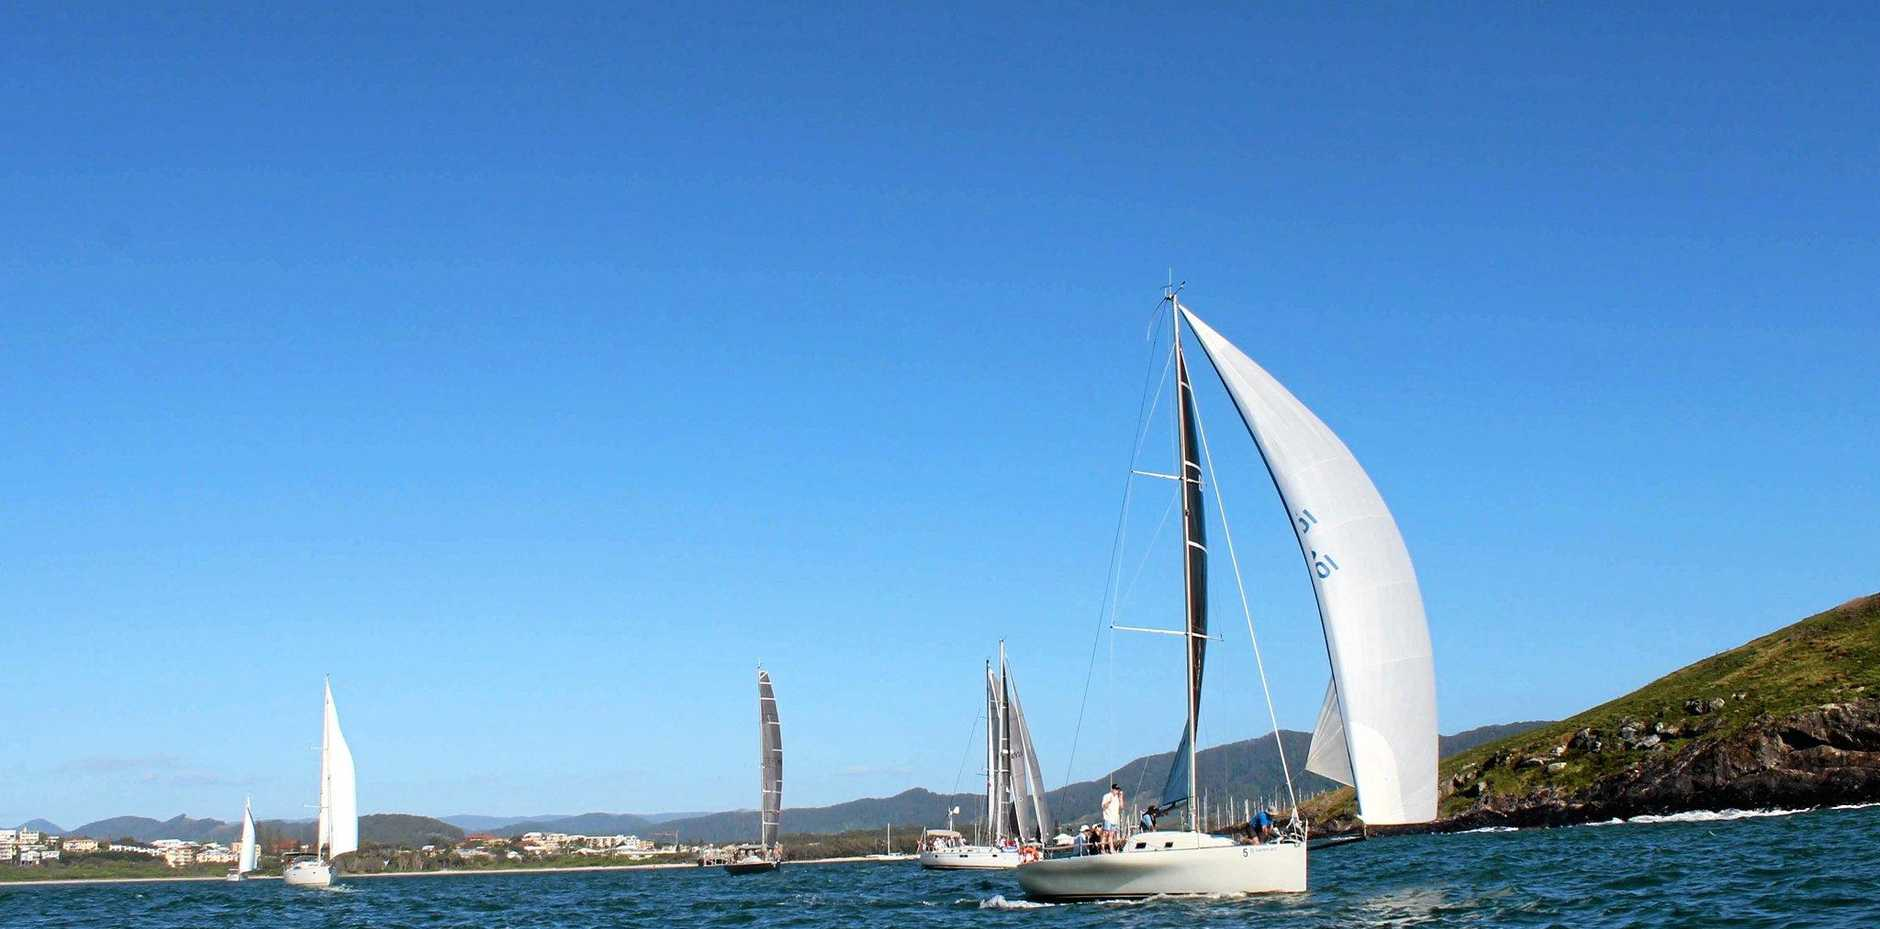 Runaway took line honours winner in the Bartercard Coffs To Paradise Yacht Race.